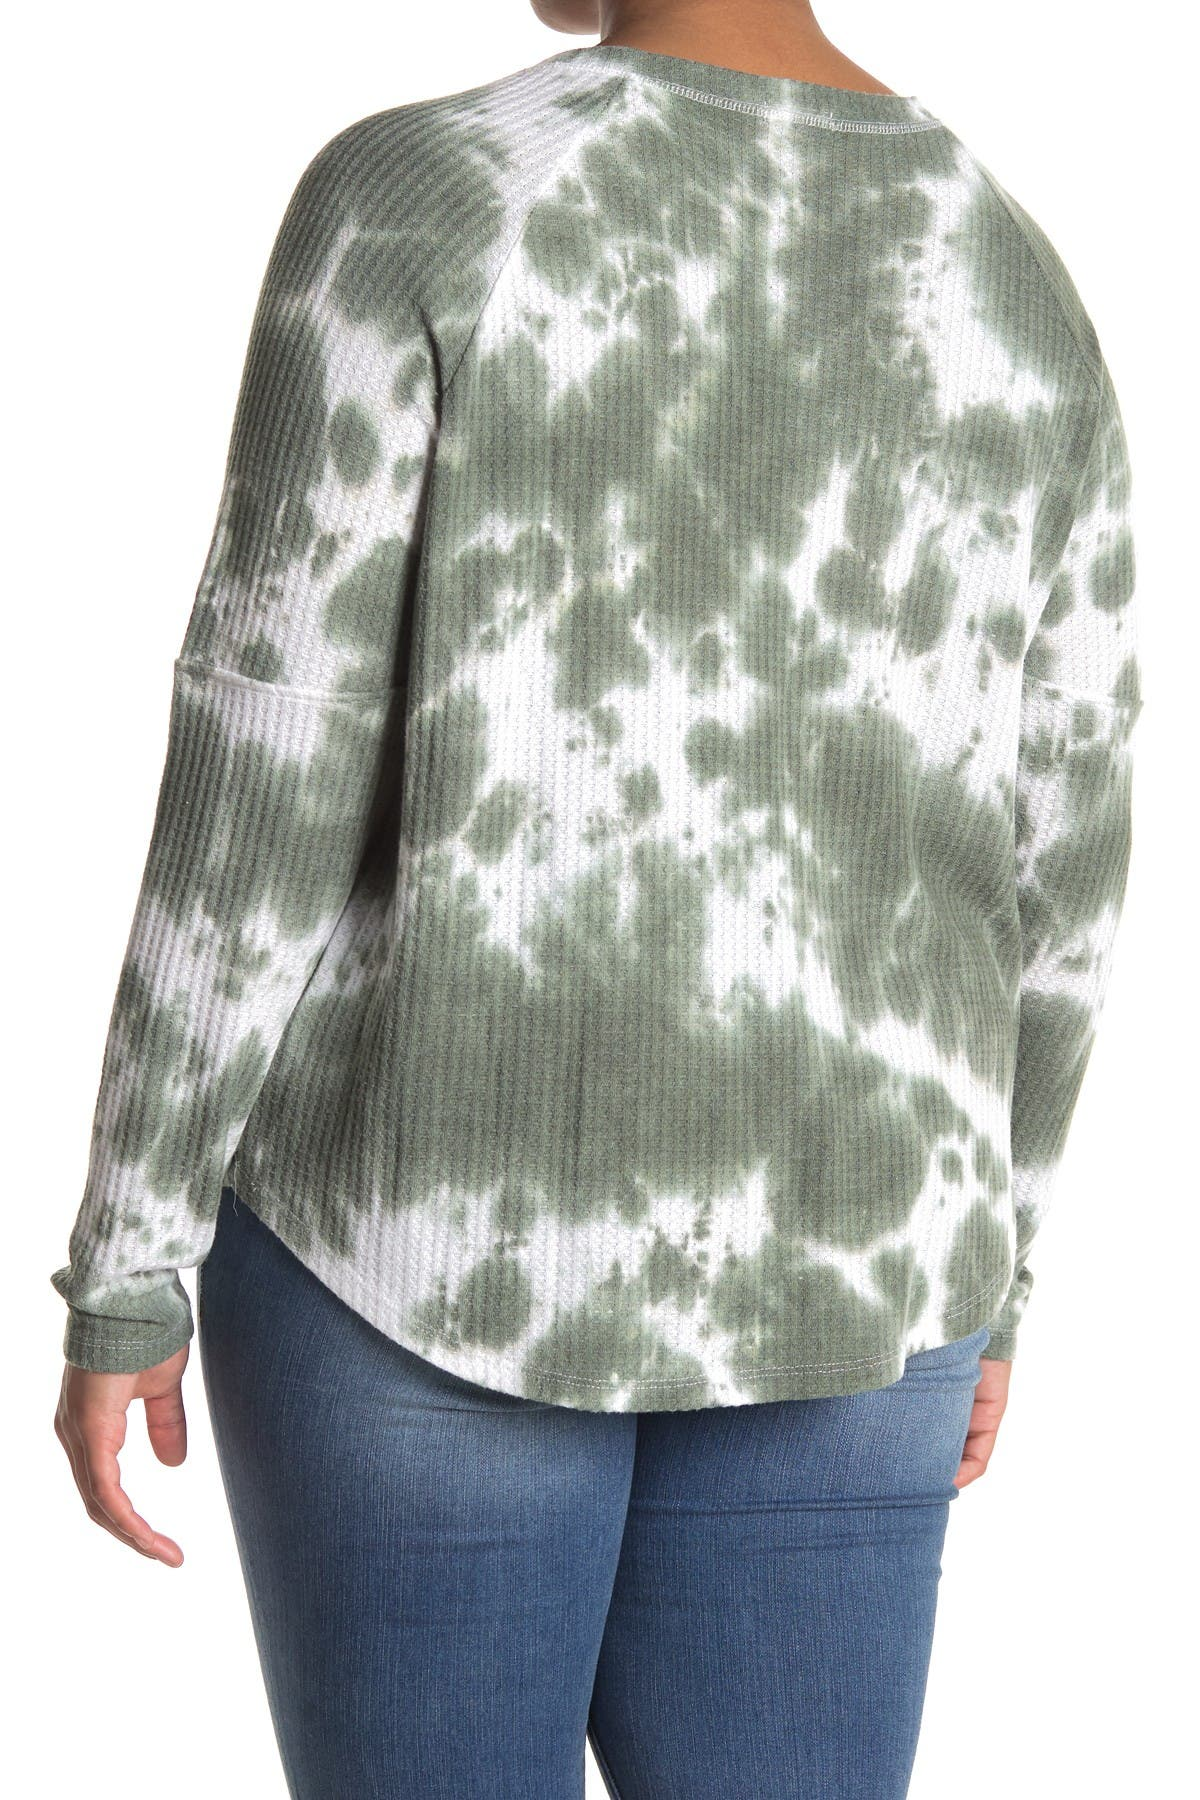 Image of Sweet Romeo Tie Dye Waffle Knit Thermal w/ Thumb Holes